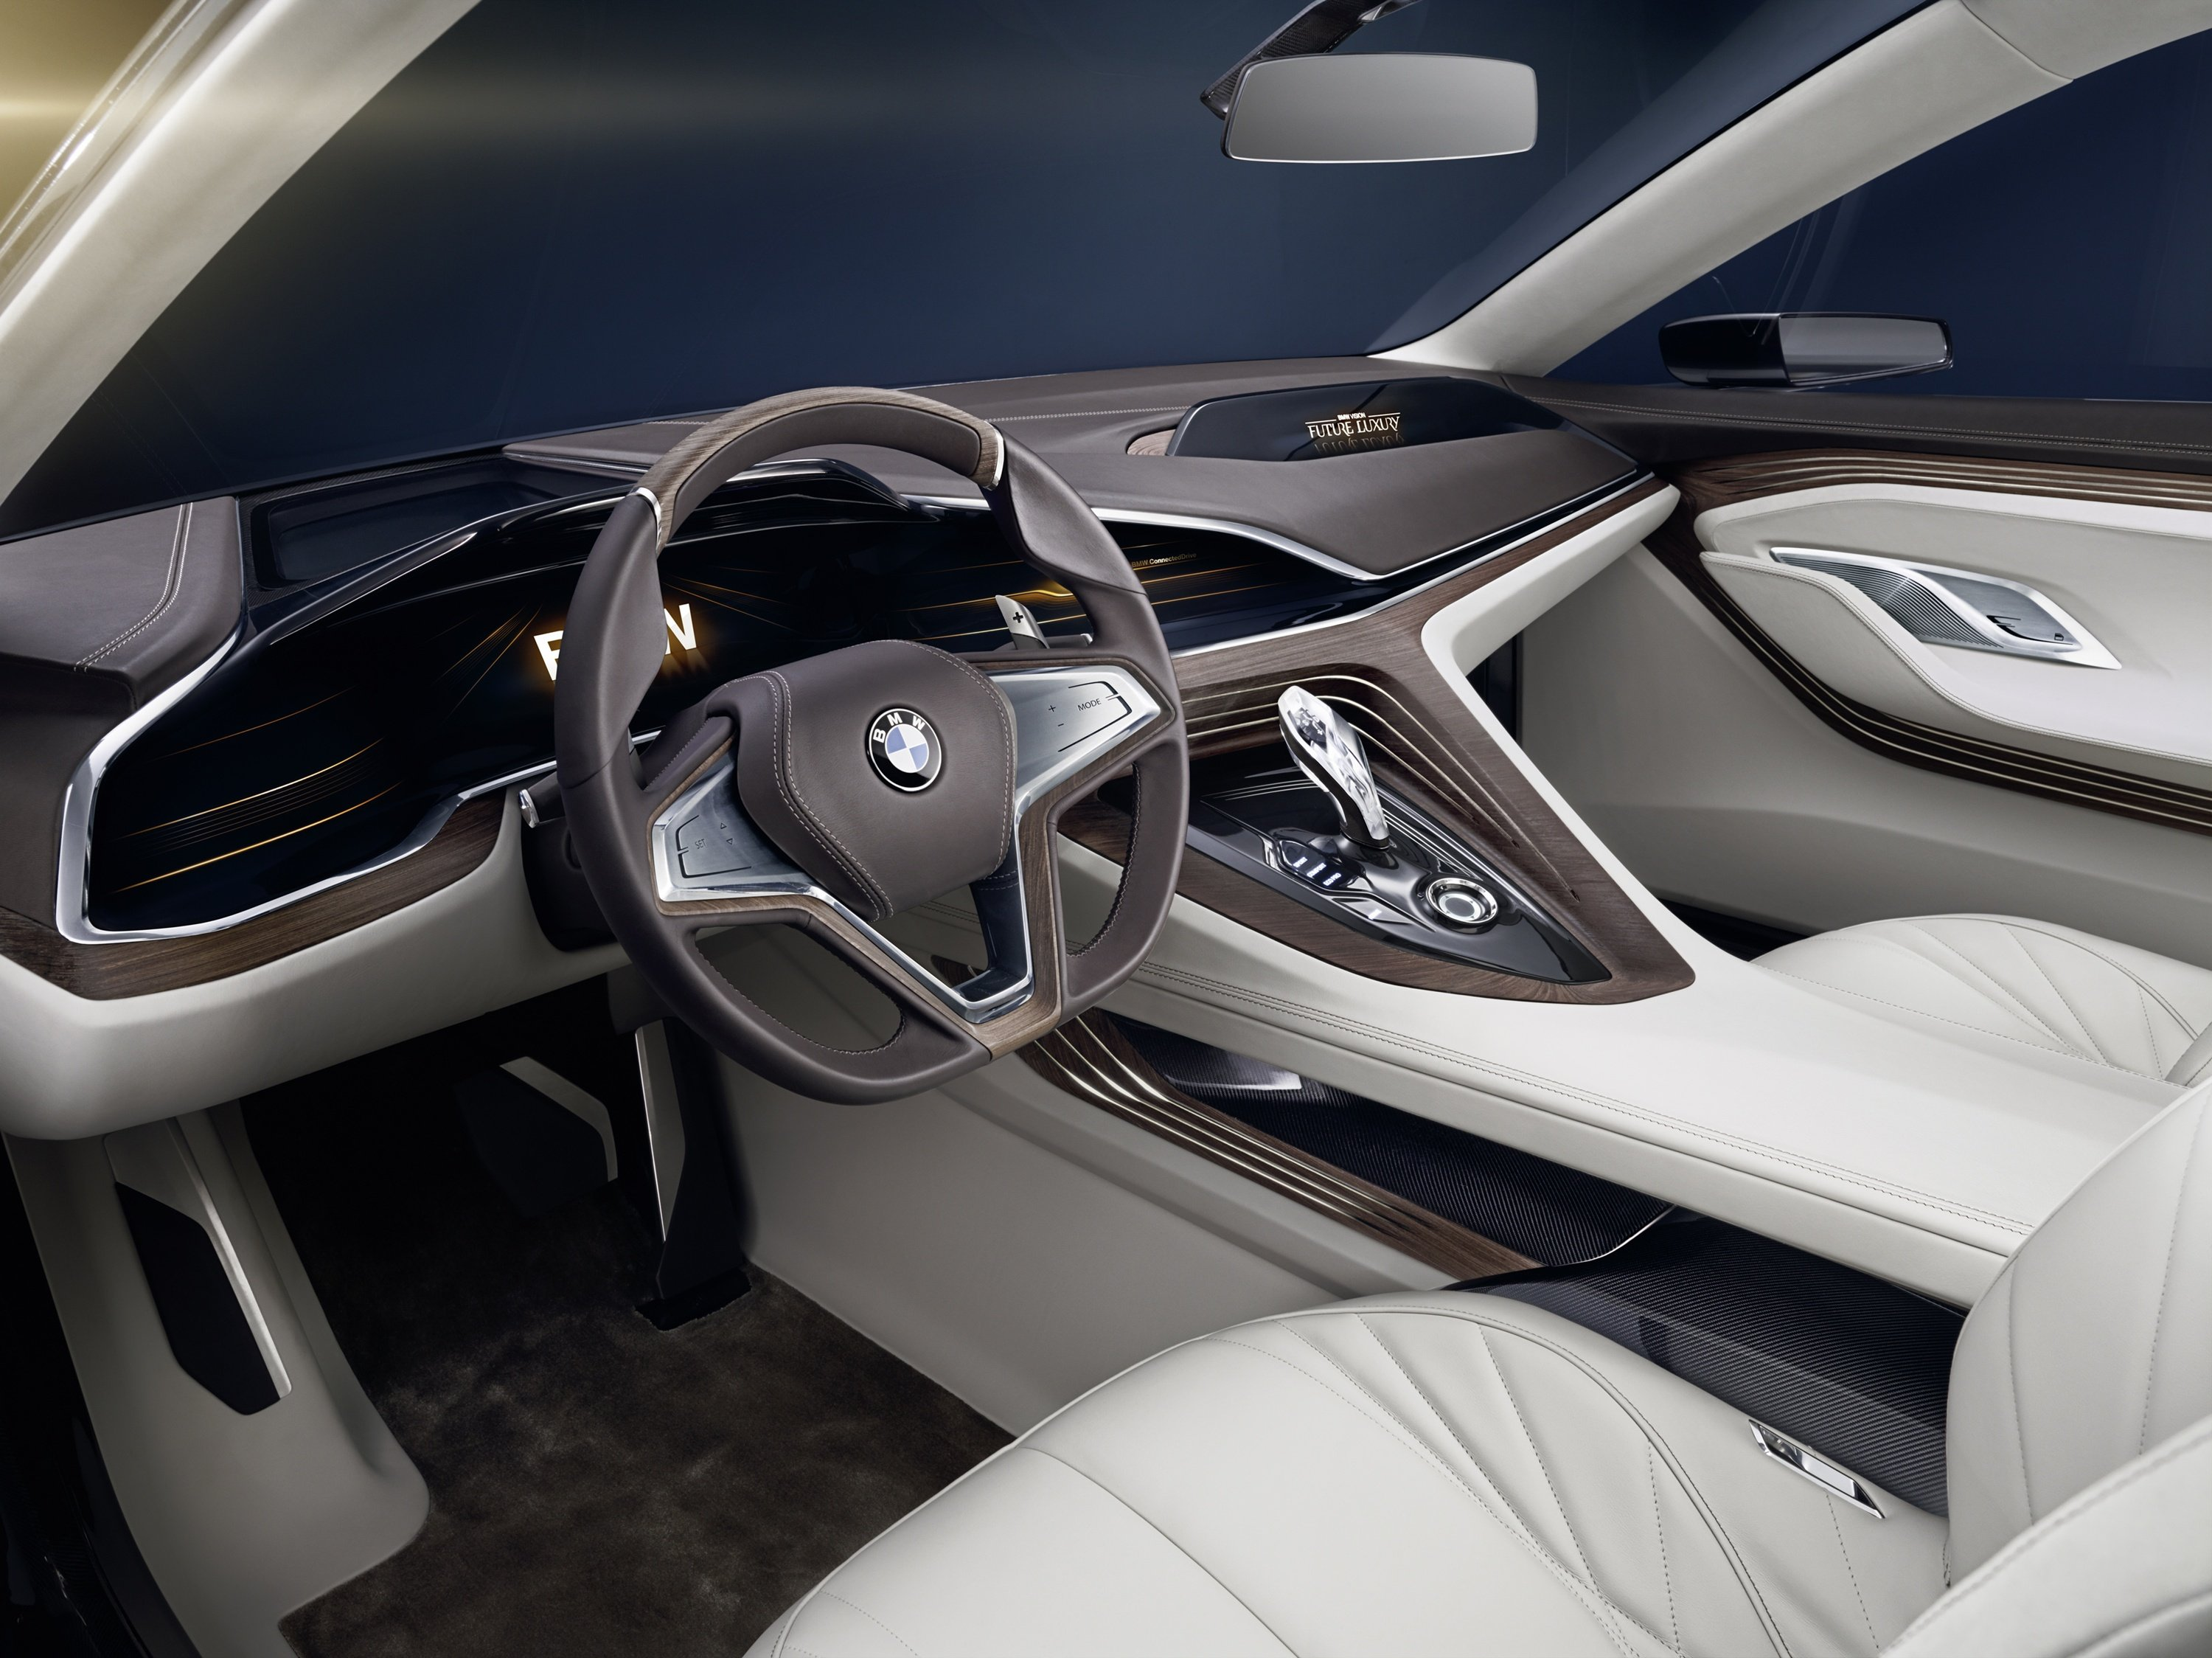 BMW_Vision_Future_Luxury_big_3000x2248 (4)